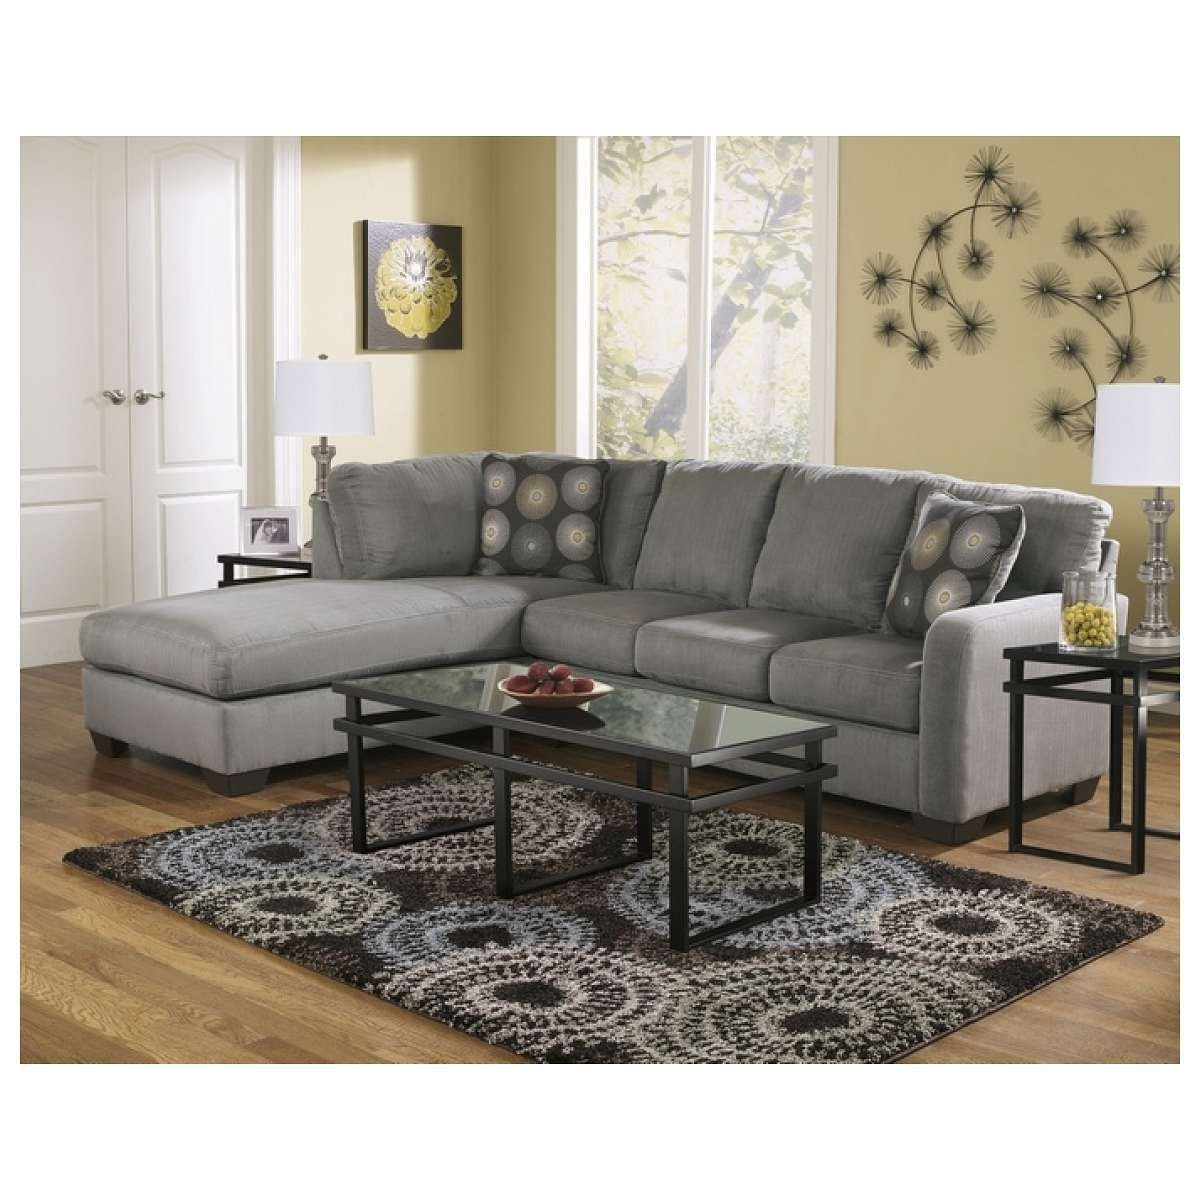 Ashley Furniture 2 Pc Zella Collection Charcoal Plush Fabric Upholstered Sectional  Sofa With Chaise   Pricefalls